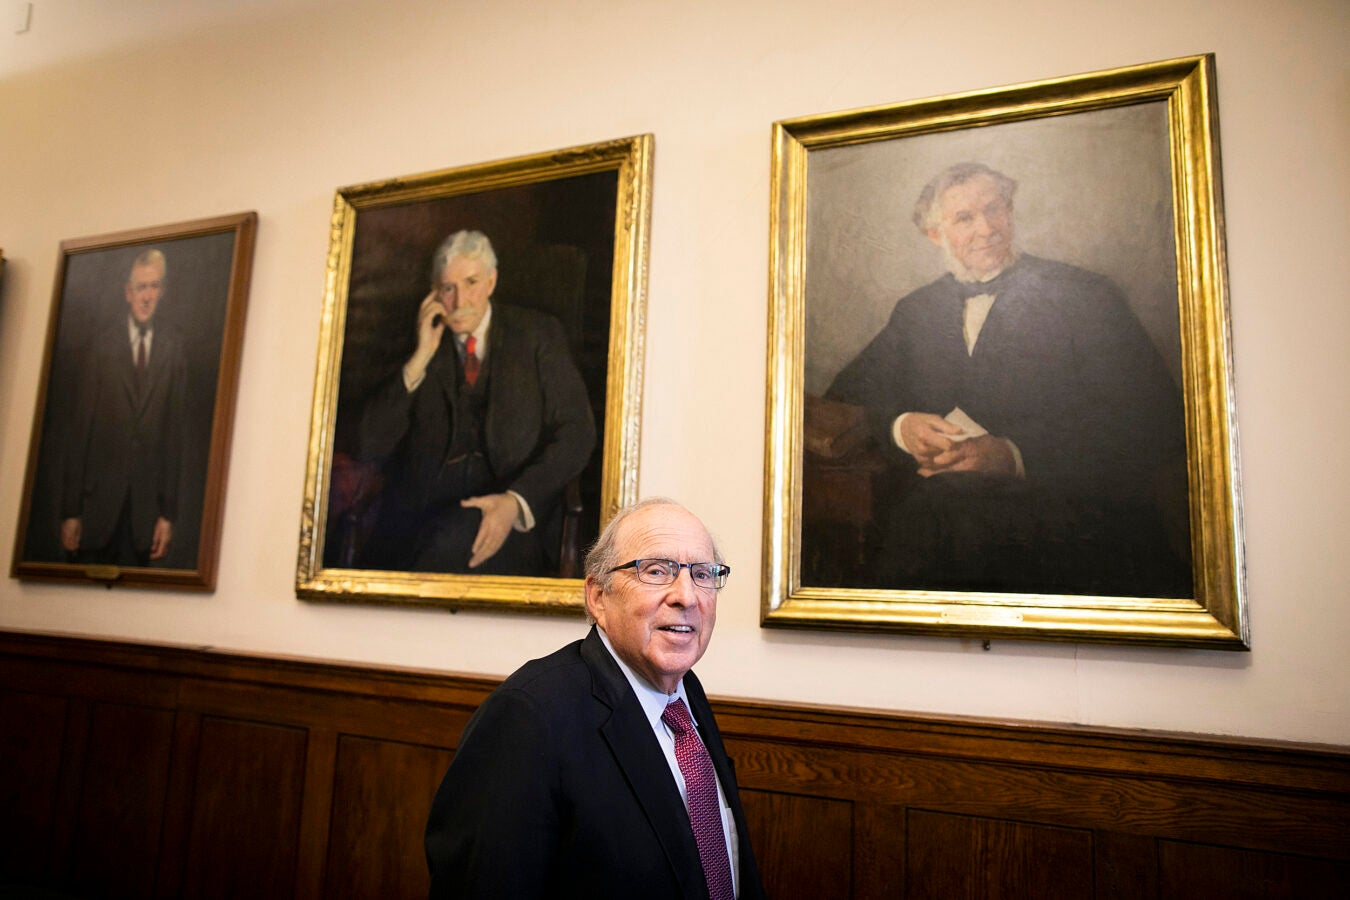 Harvard School of Dental Medicine Dean Bruce Donoff.